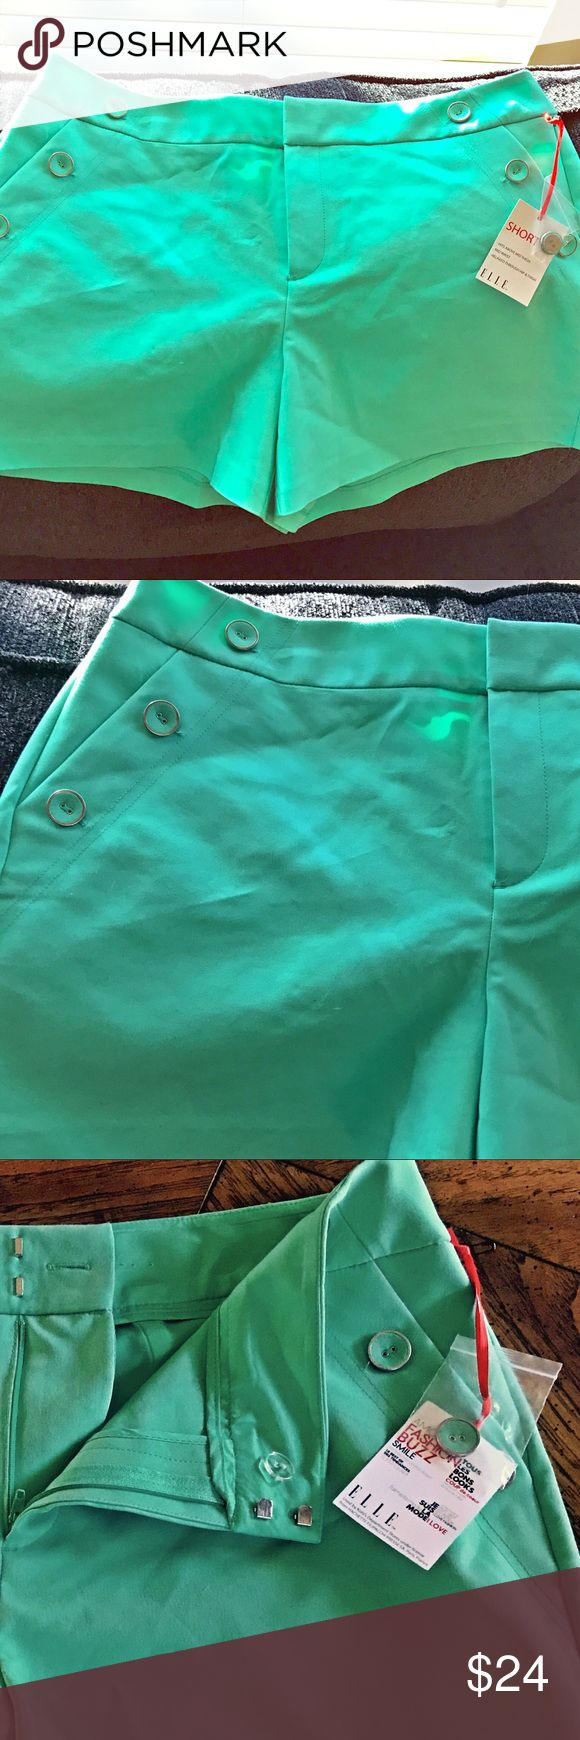 Mint Green Elle Dressy Shorts, NEW WITH TAGS I love these💚 and if they still fit me I'd keep them!!  I forgot about them and now they are too big for me.  This style is dressy and stylish and a perfect soft shade of pistachio green.  Tags attached including extra buttons. 👗👚. All pockets are still sealed 🤐 Elle Shorts